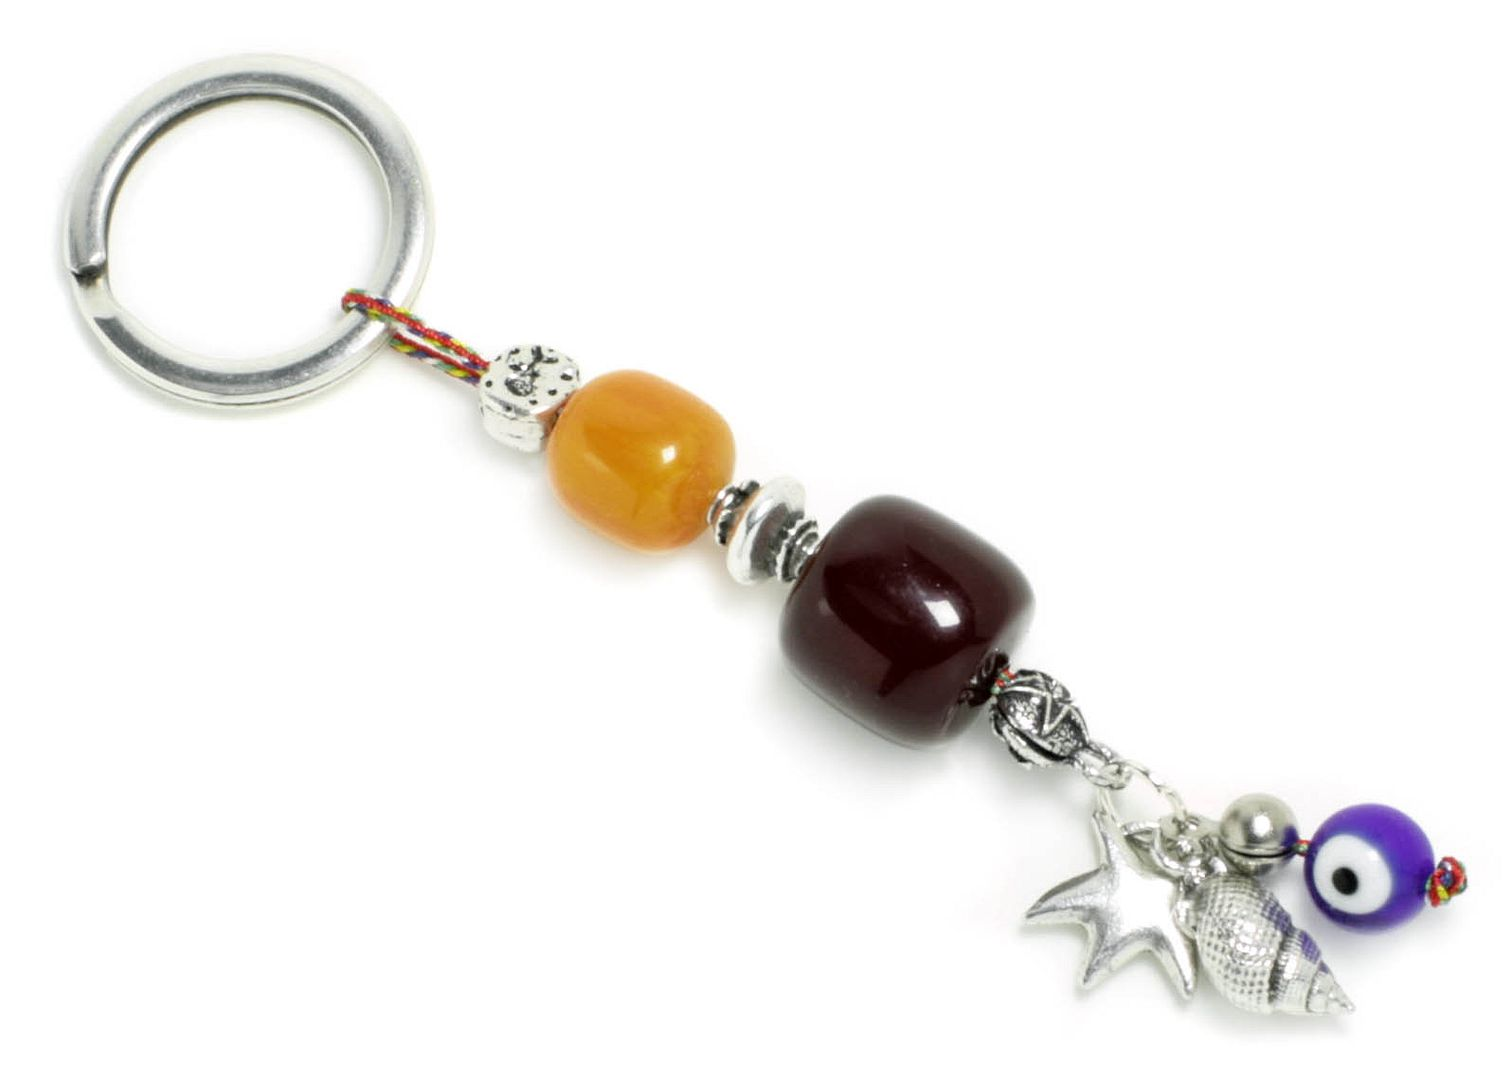 Keyring-Key Chain ~ High Quality Artificial Resin - Evil Eye, Starfish & Seashell